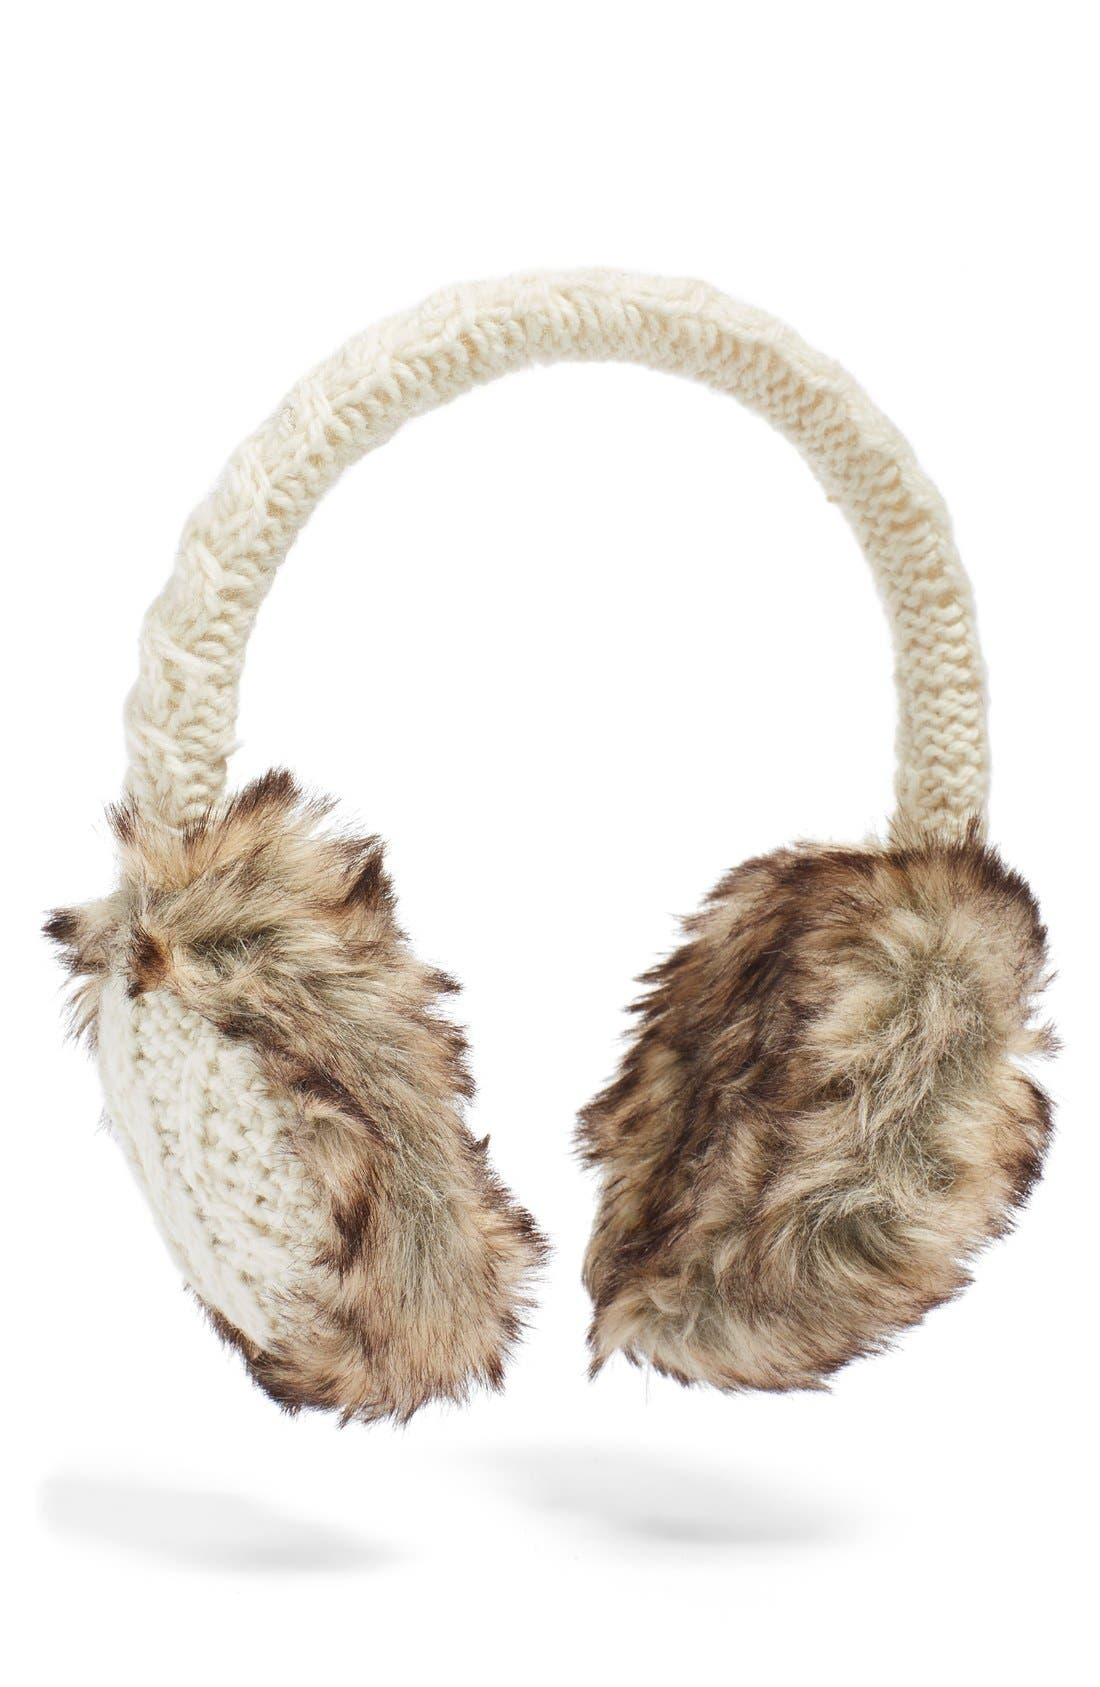 Alternate Image 1 Selected - Nirvanna Designs Cable Knit Earmuffs